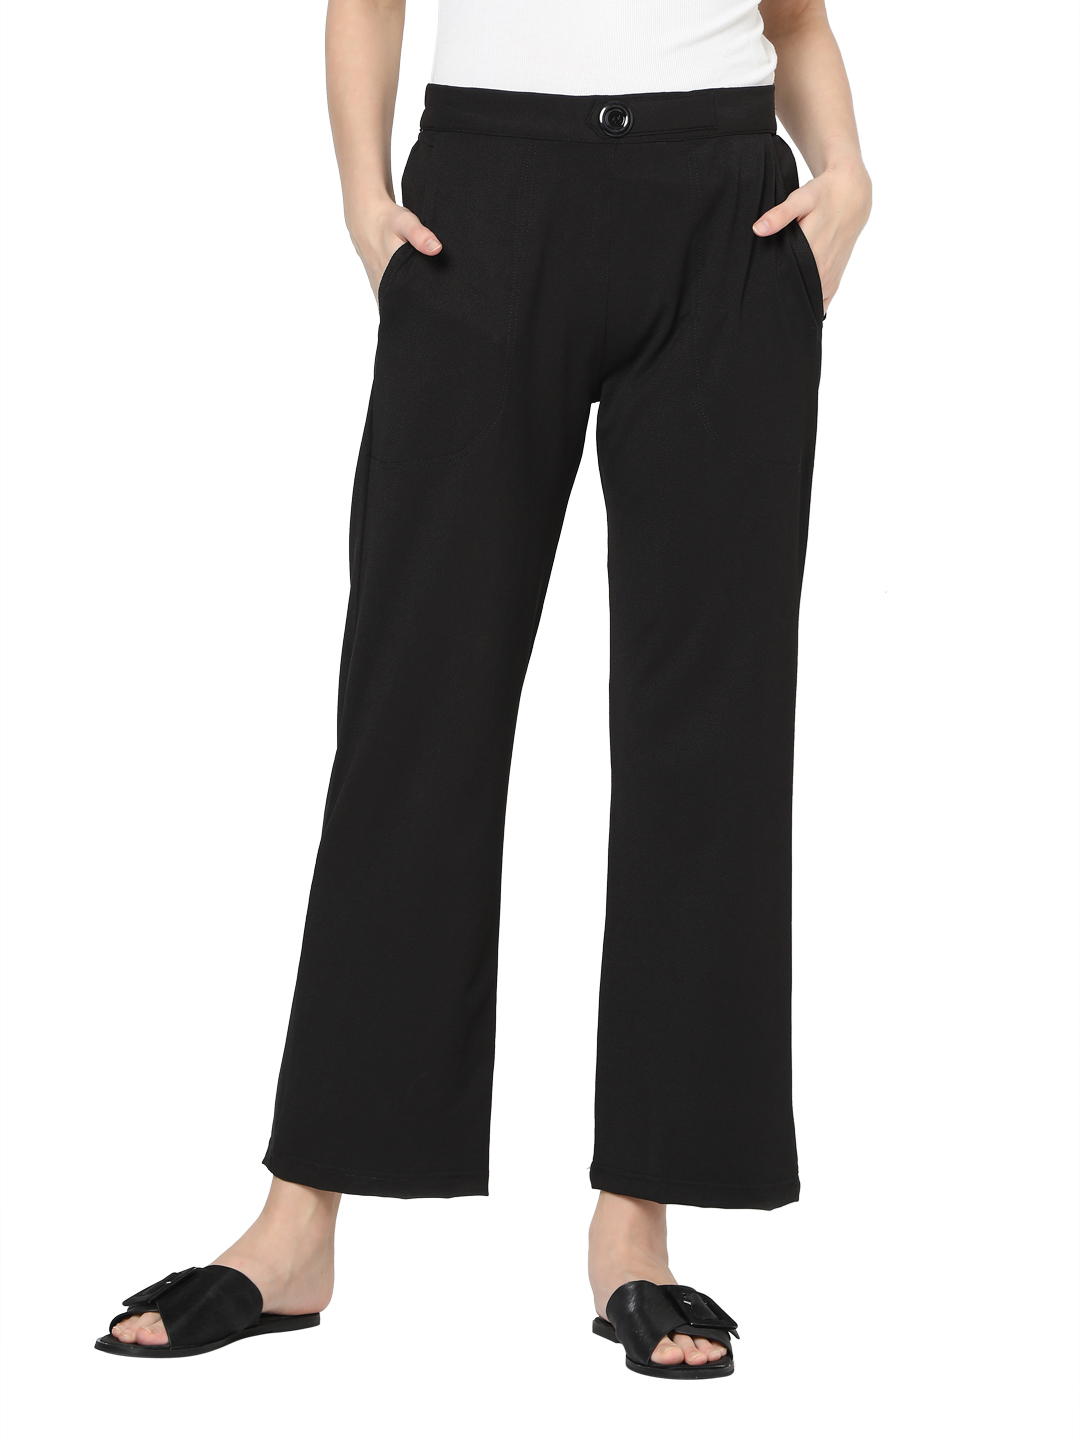 Smarty Pants | Smarty pants women's cotton stretchable black ankle length flared trouser